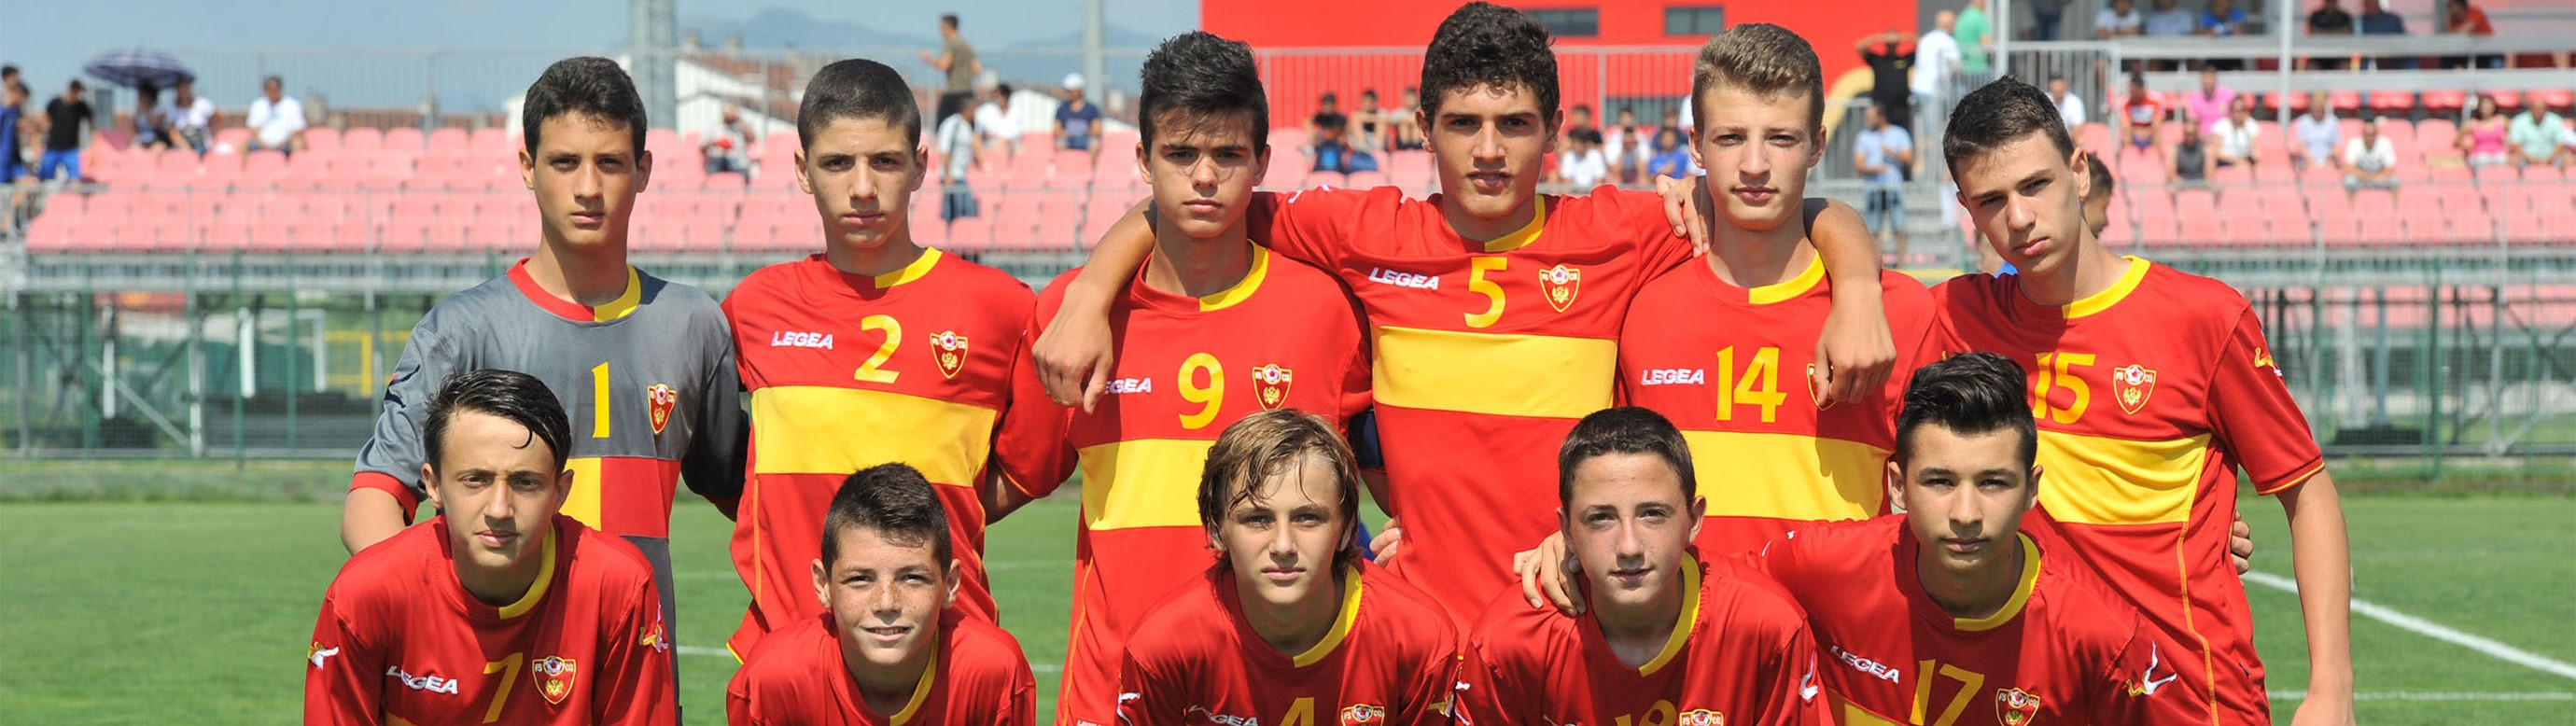 U-15 National Team